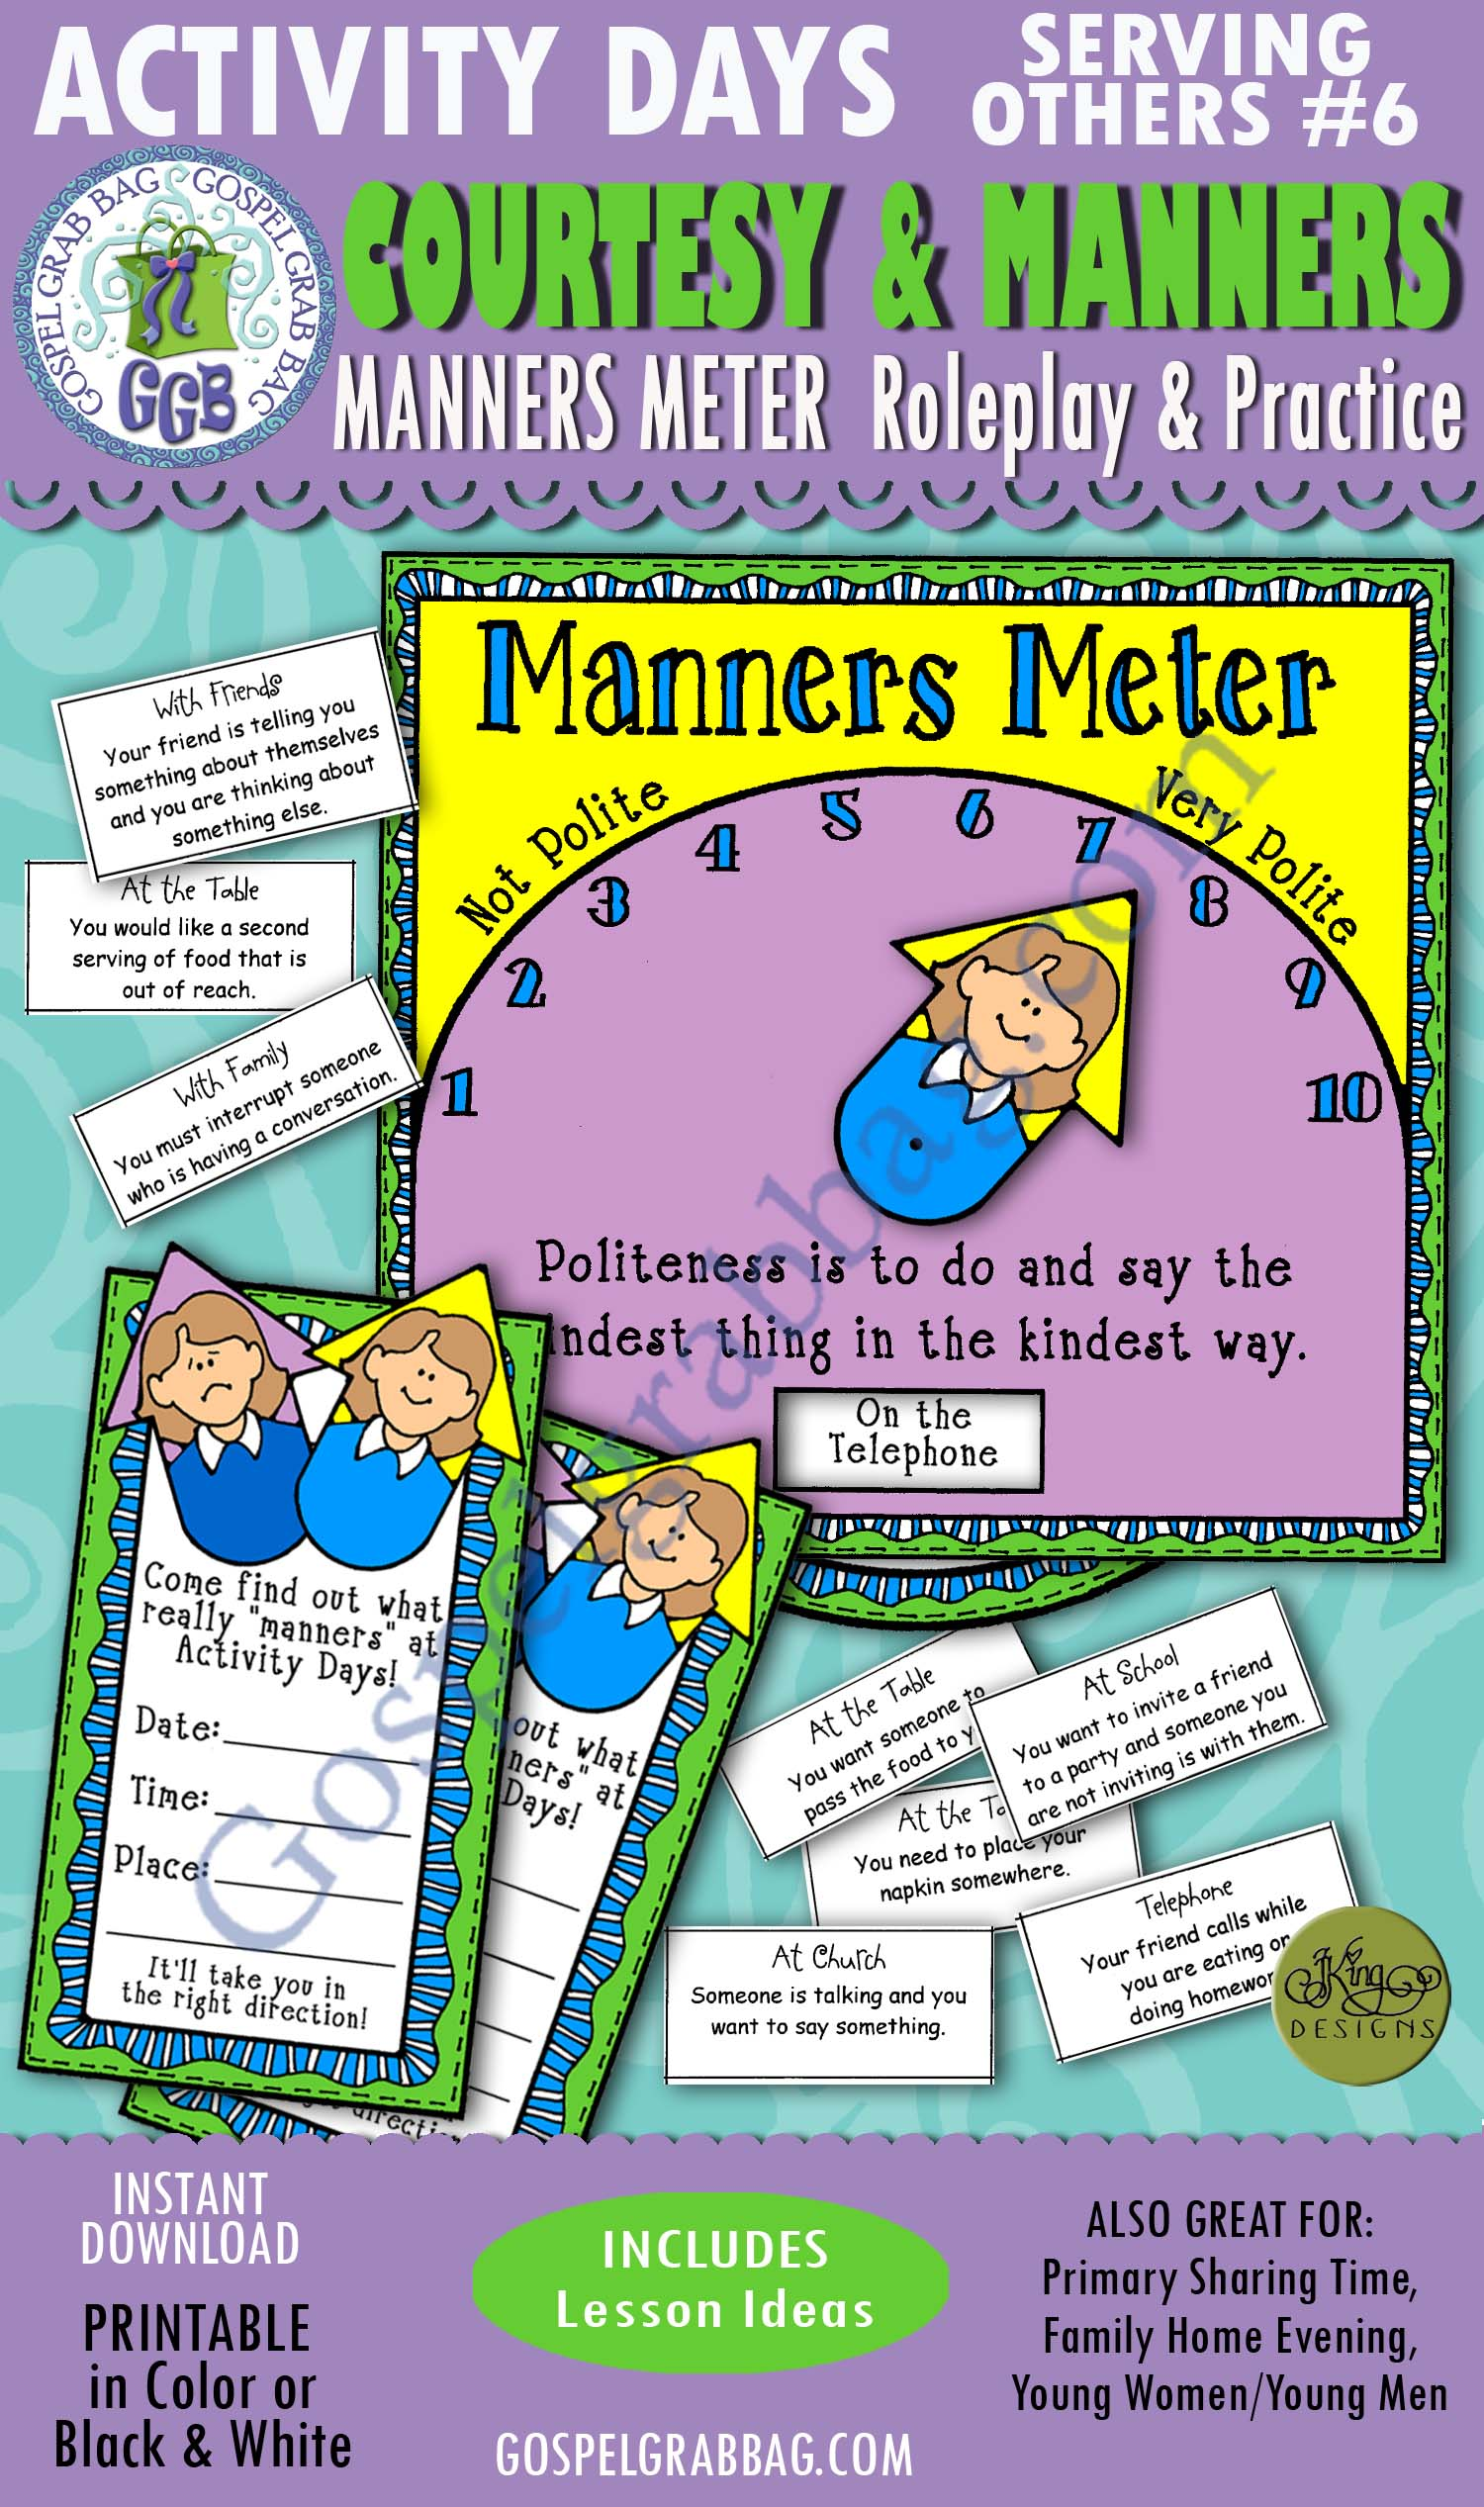 $3.00 Activity Days: Serving Others - Faith in God GOAL 6: Courtesy and Manners - ACTIVITY: Manners Meter Roleplay and Practice, GospelGrabBag.com